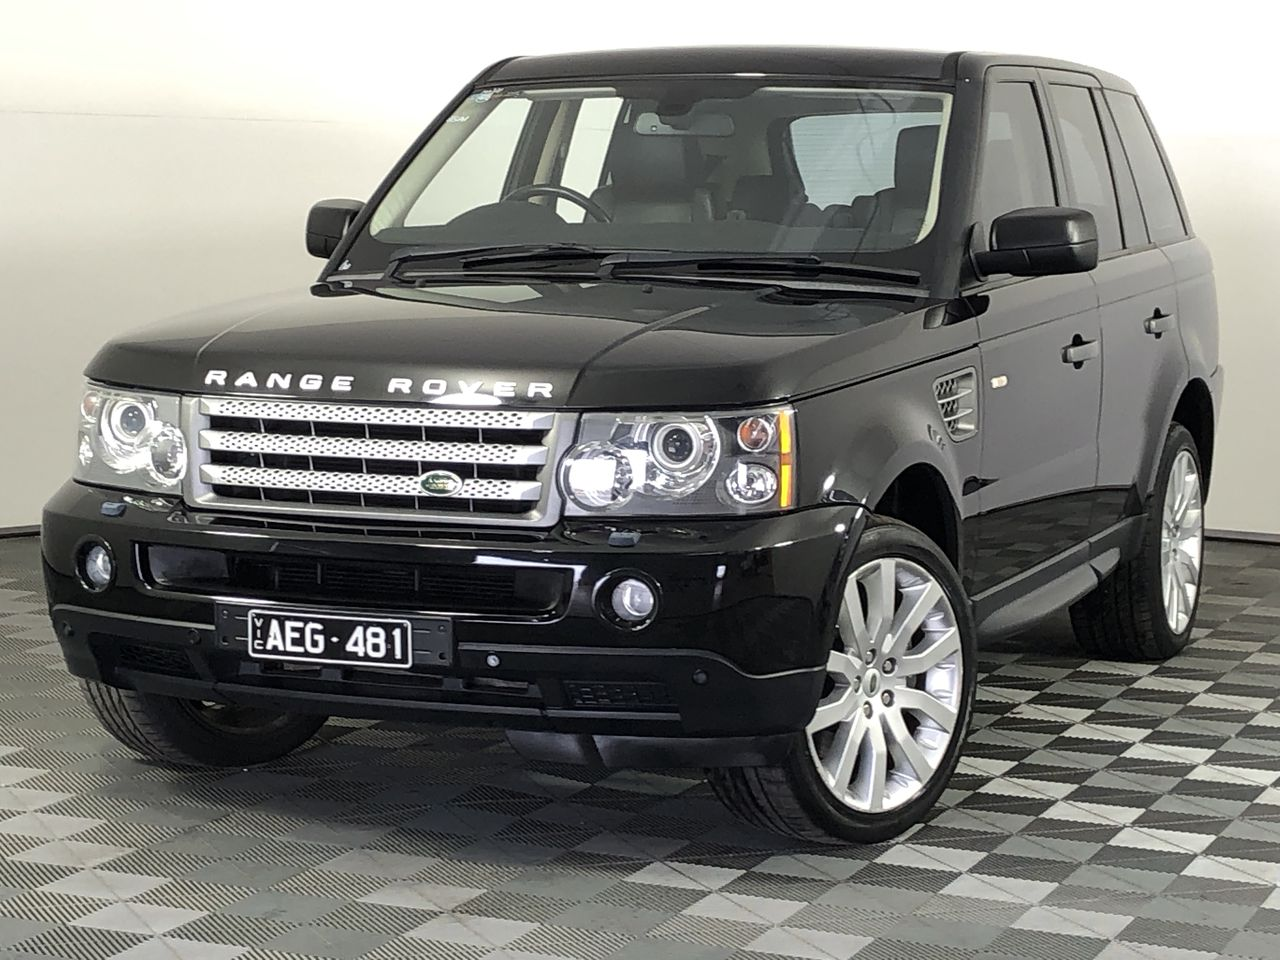 2008 Land Rover Range Rover Sport TDV8 Turbo Diesel Automatic Wagon